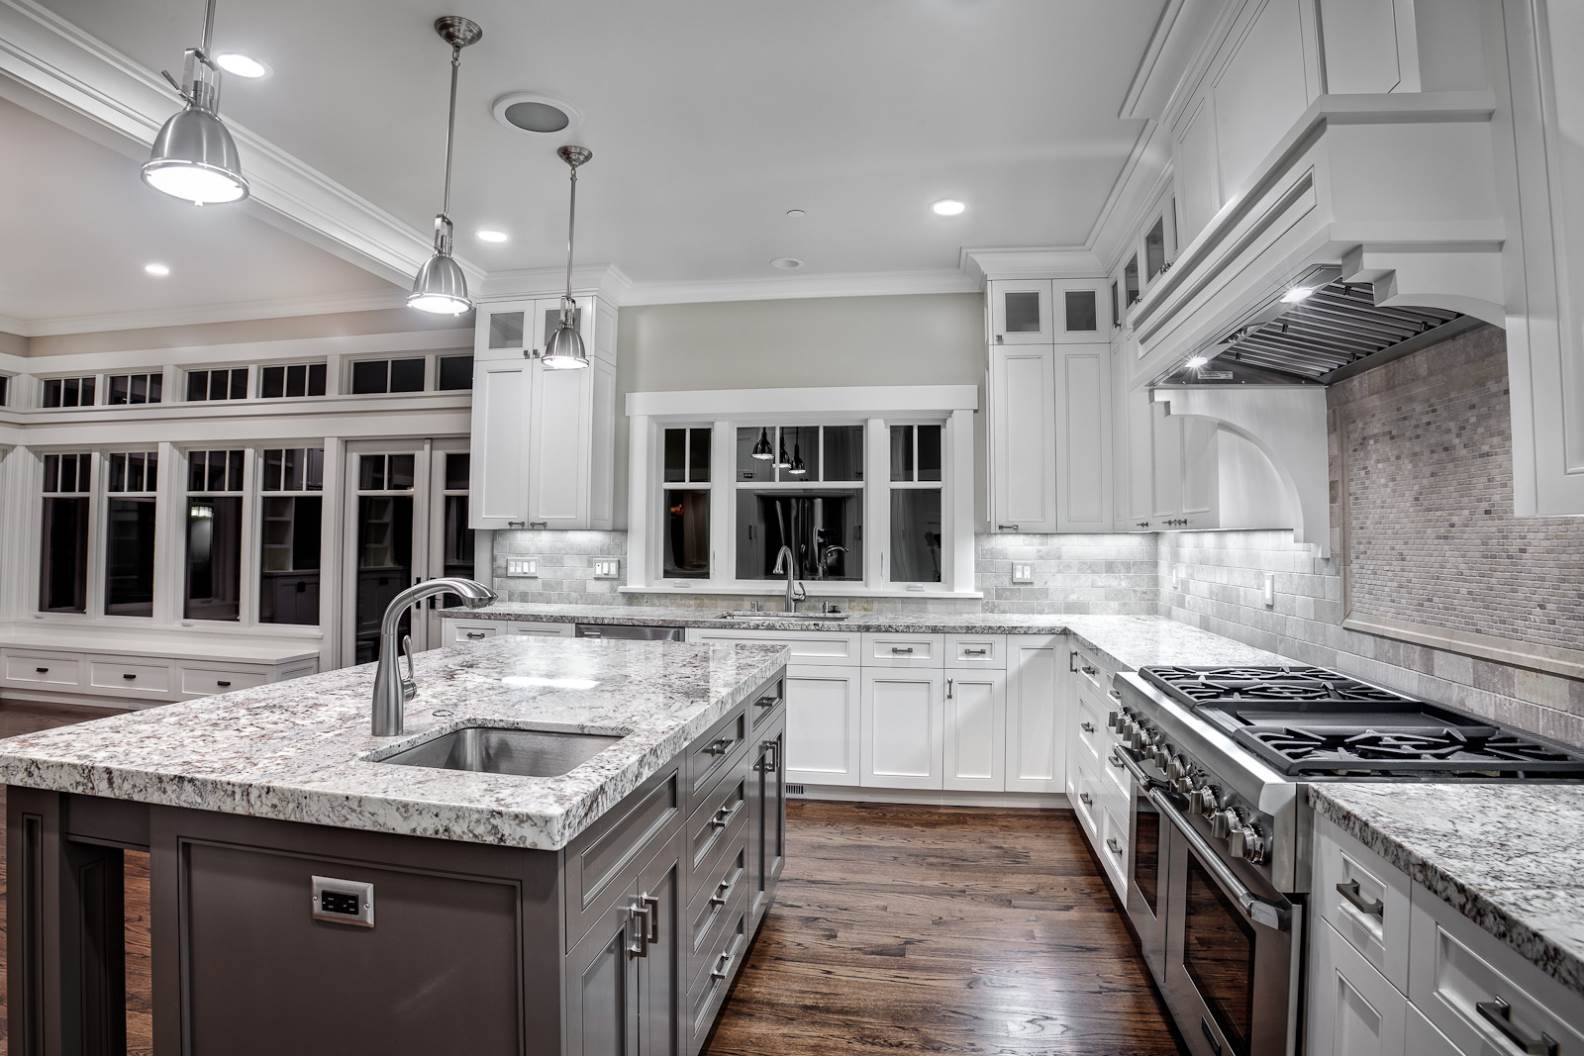 Pictures Of White Kitchen Cabinets With Black Hardware